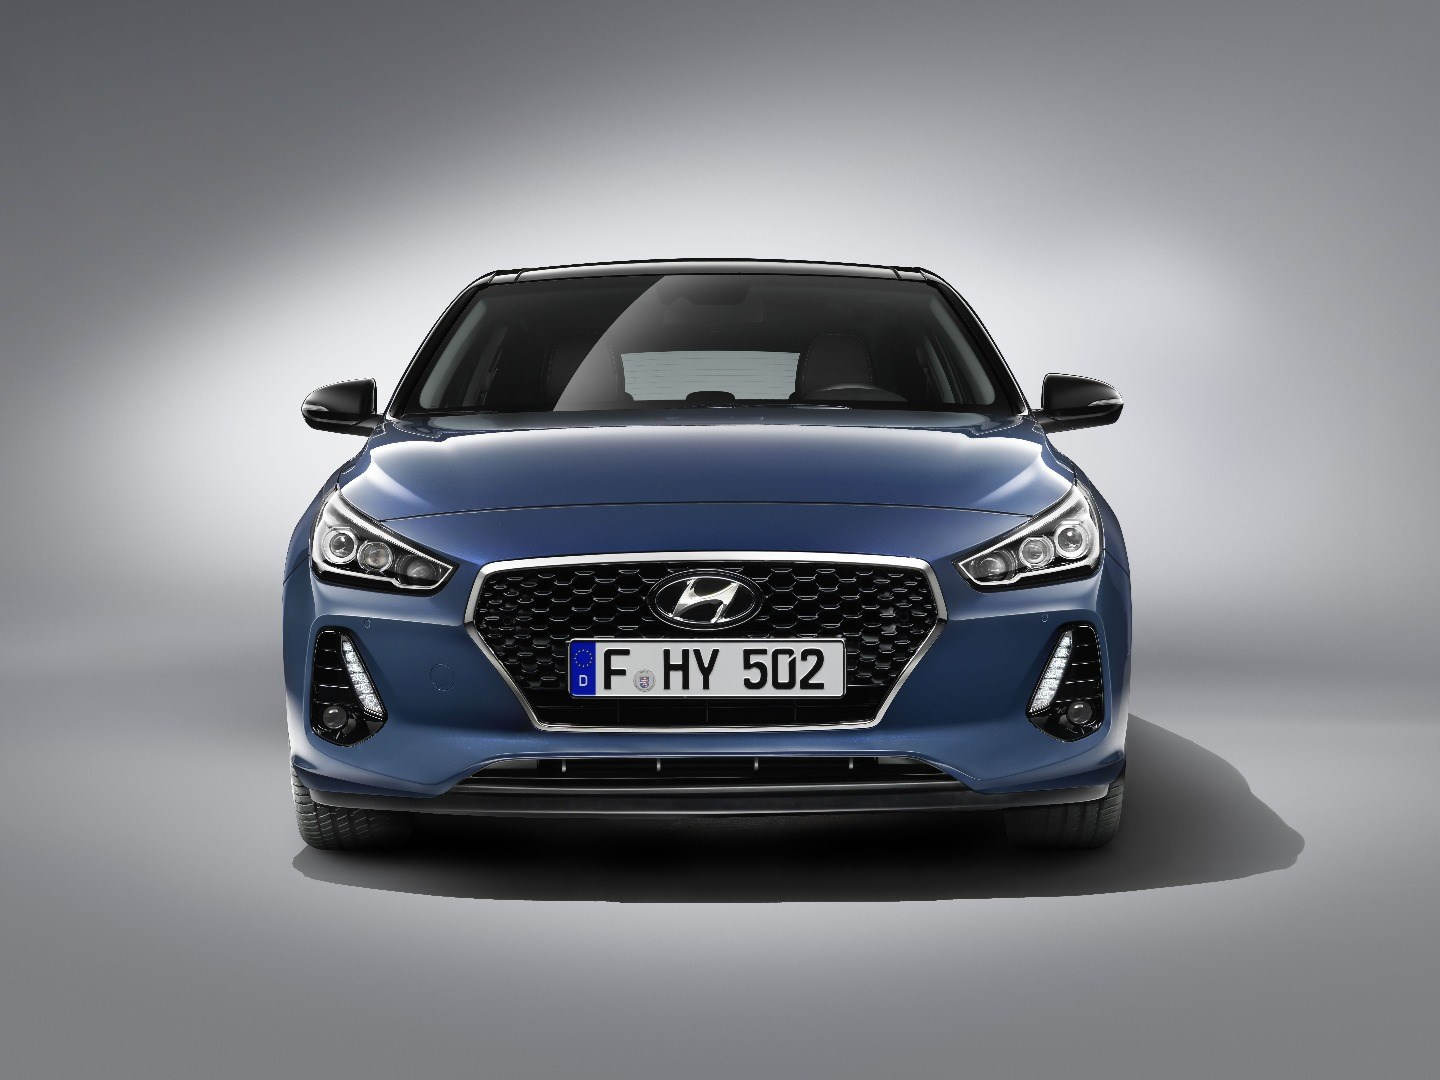 Hyundai's All-New i30 Gets Full Worldwide Reveal Thumbnail